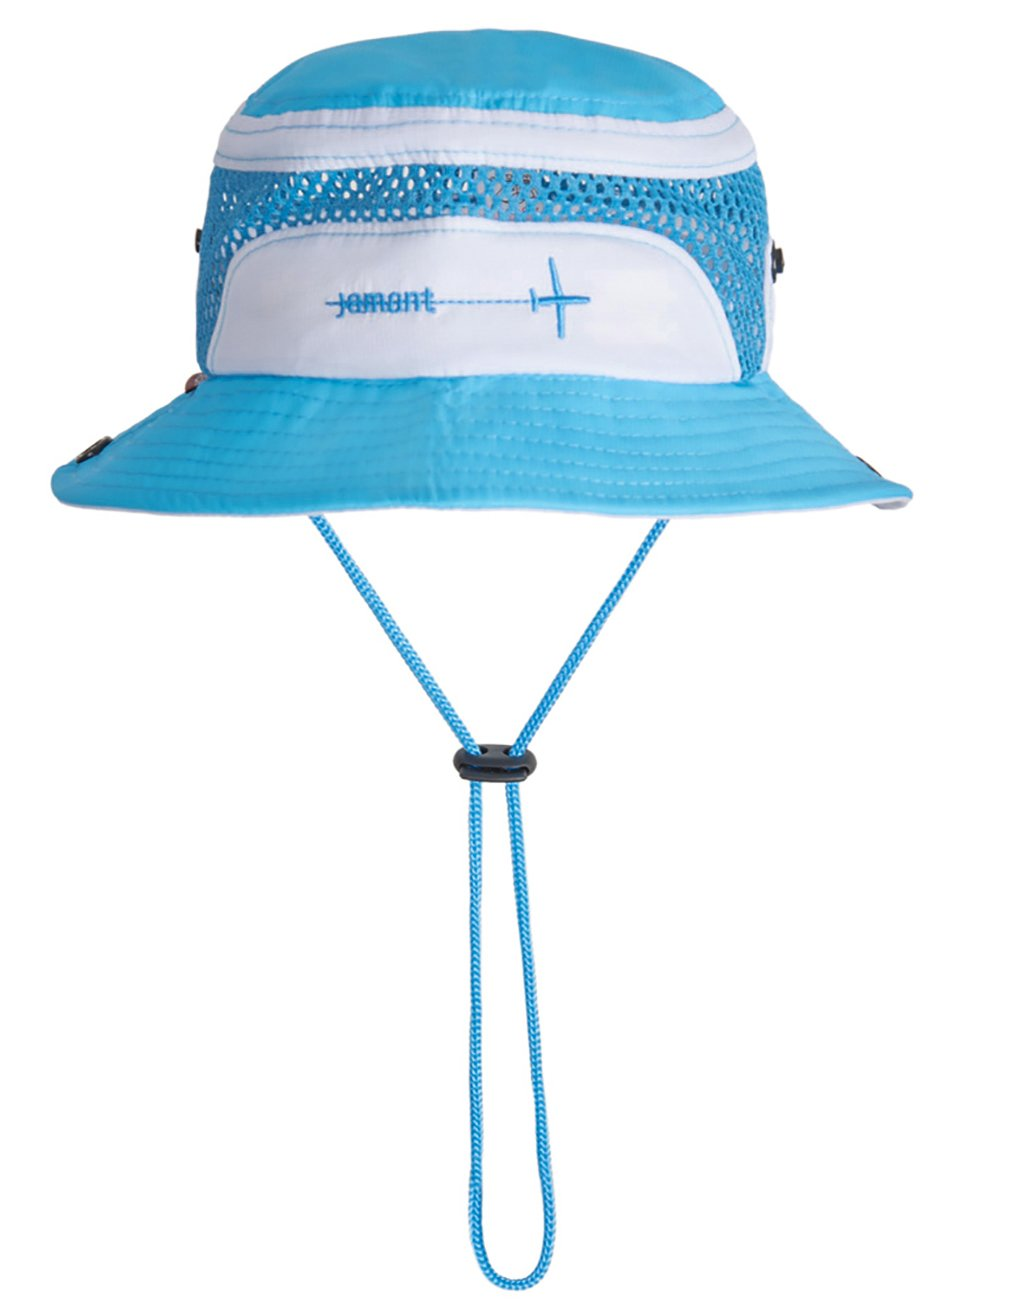 Eriso Baby Toddler Flight Boonie Sun Protection Hat with Chin Strap (12-24 Months, White Aqua)